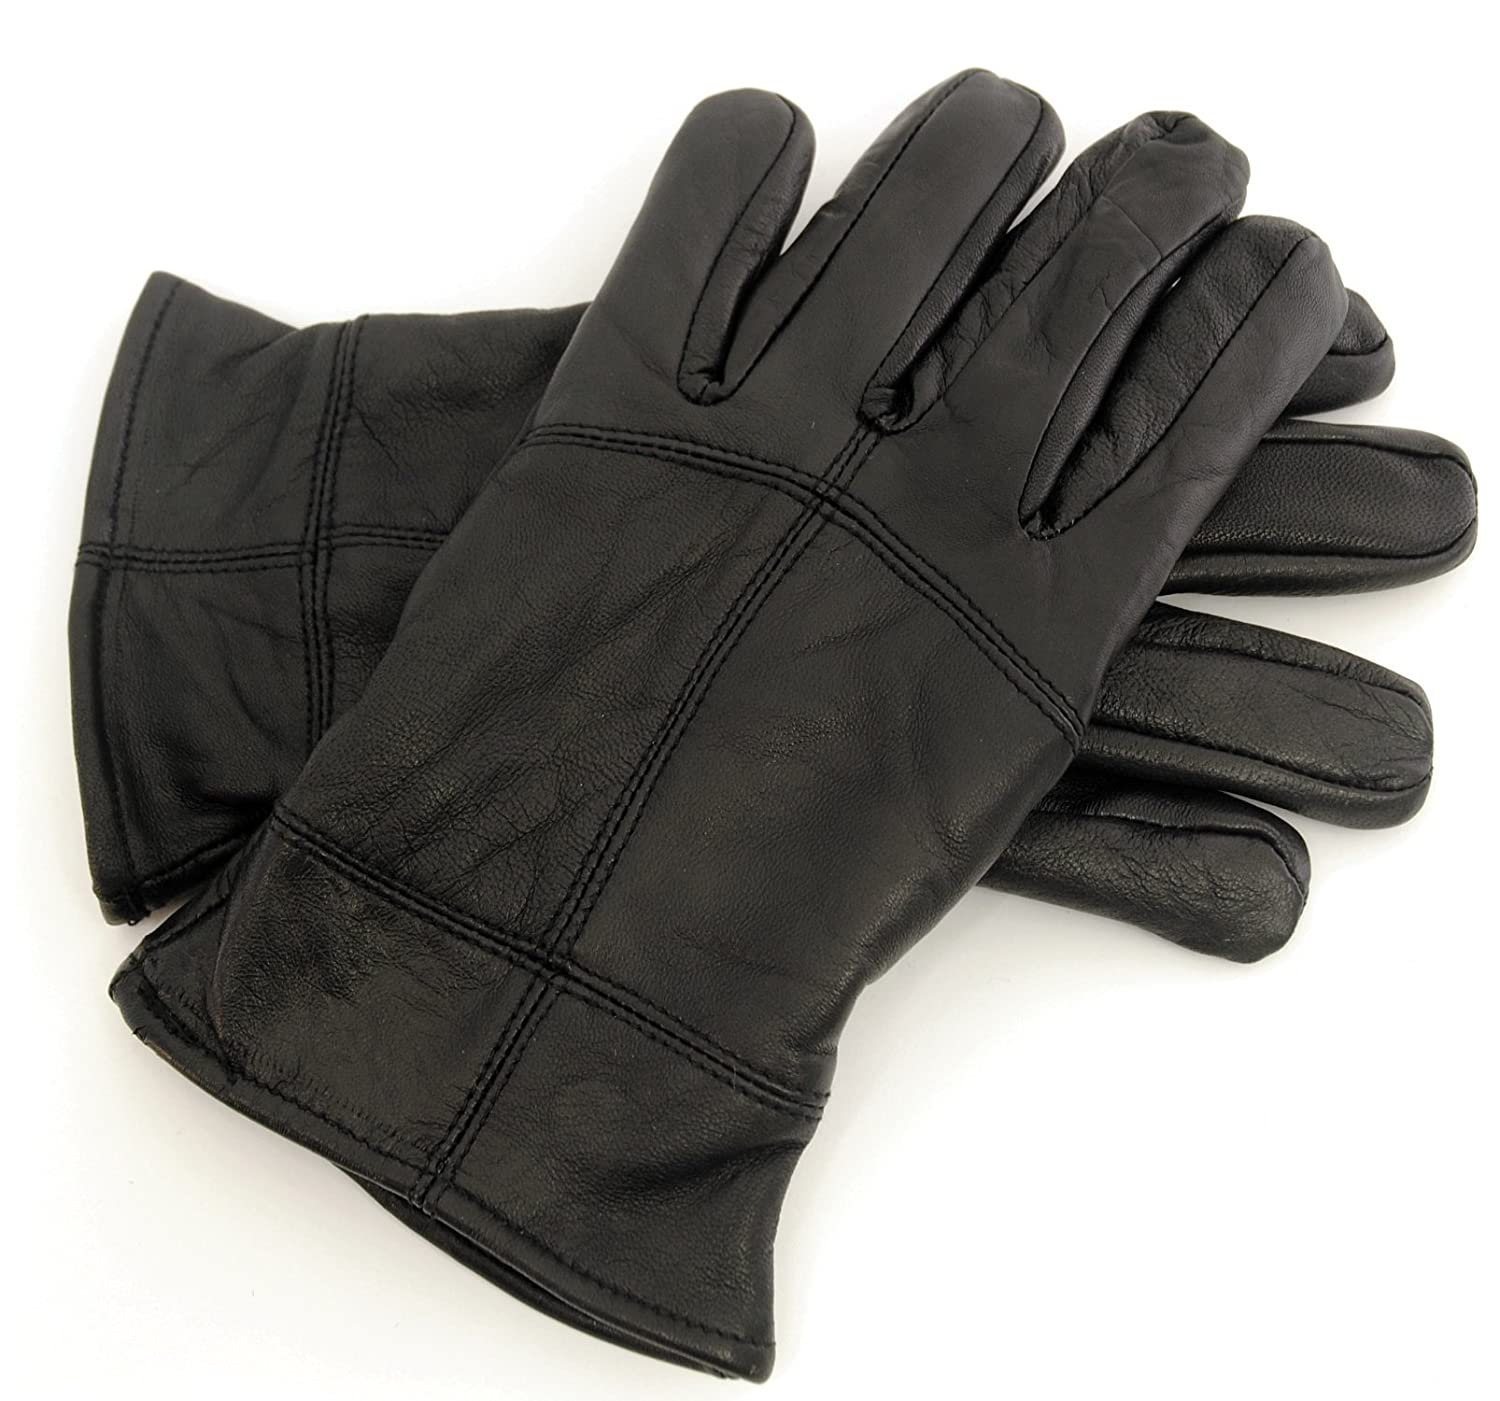 Leather mens gloves uk - Mens Thinsulate Thermal Black Sheepskin Leather Gloves Ski Warm Winter Snow Boys Gents Accessories Size Uk